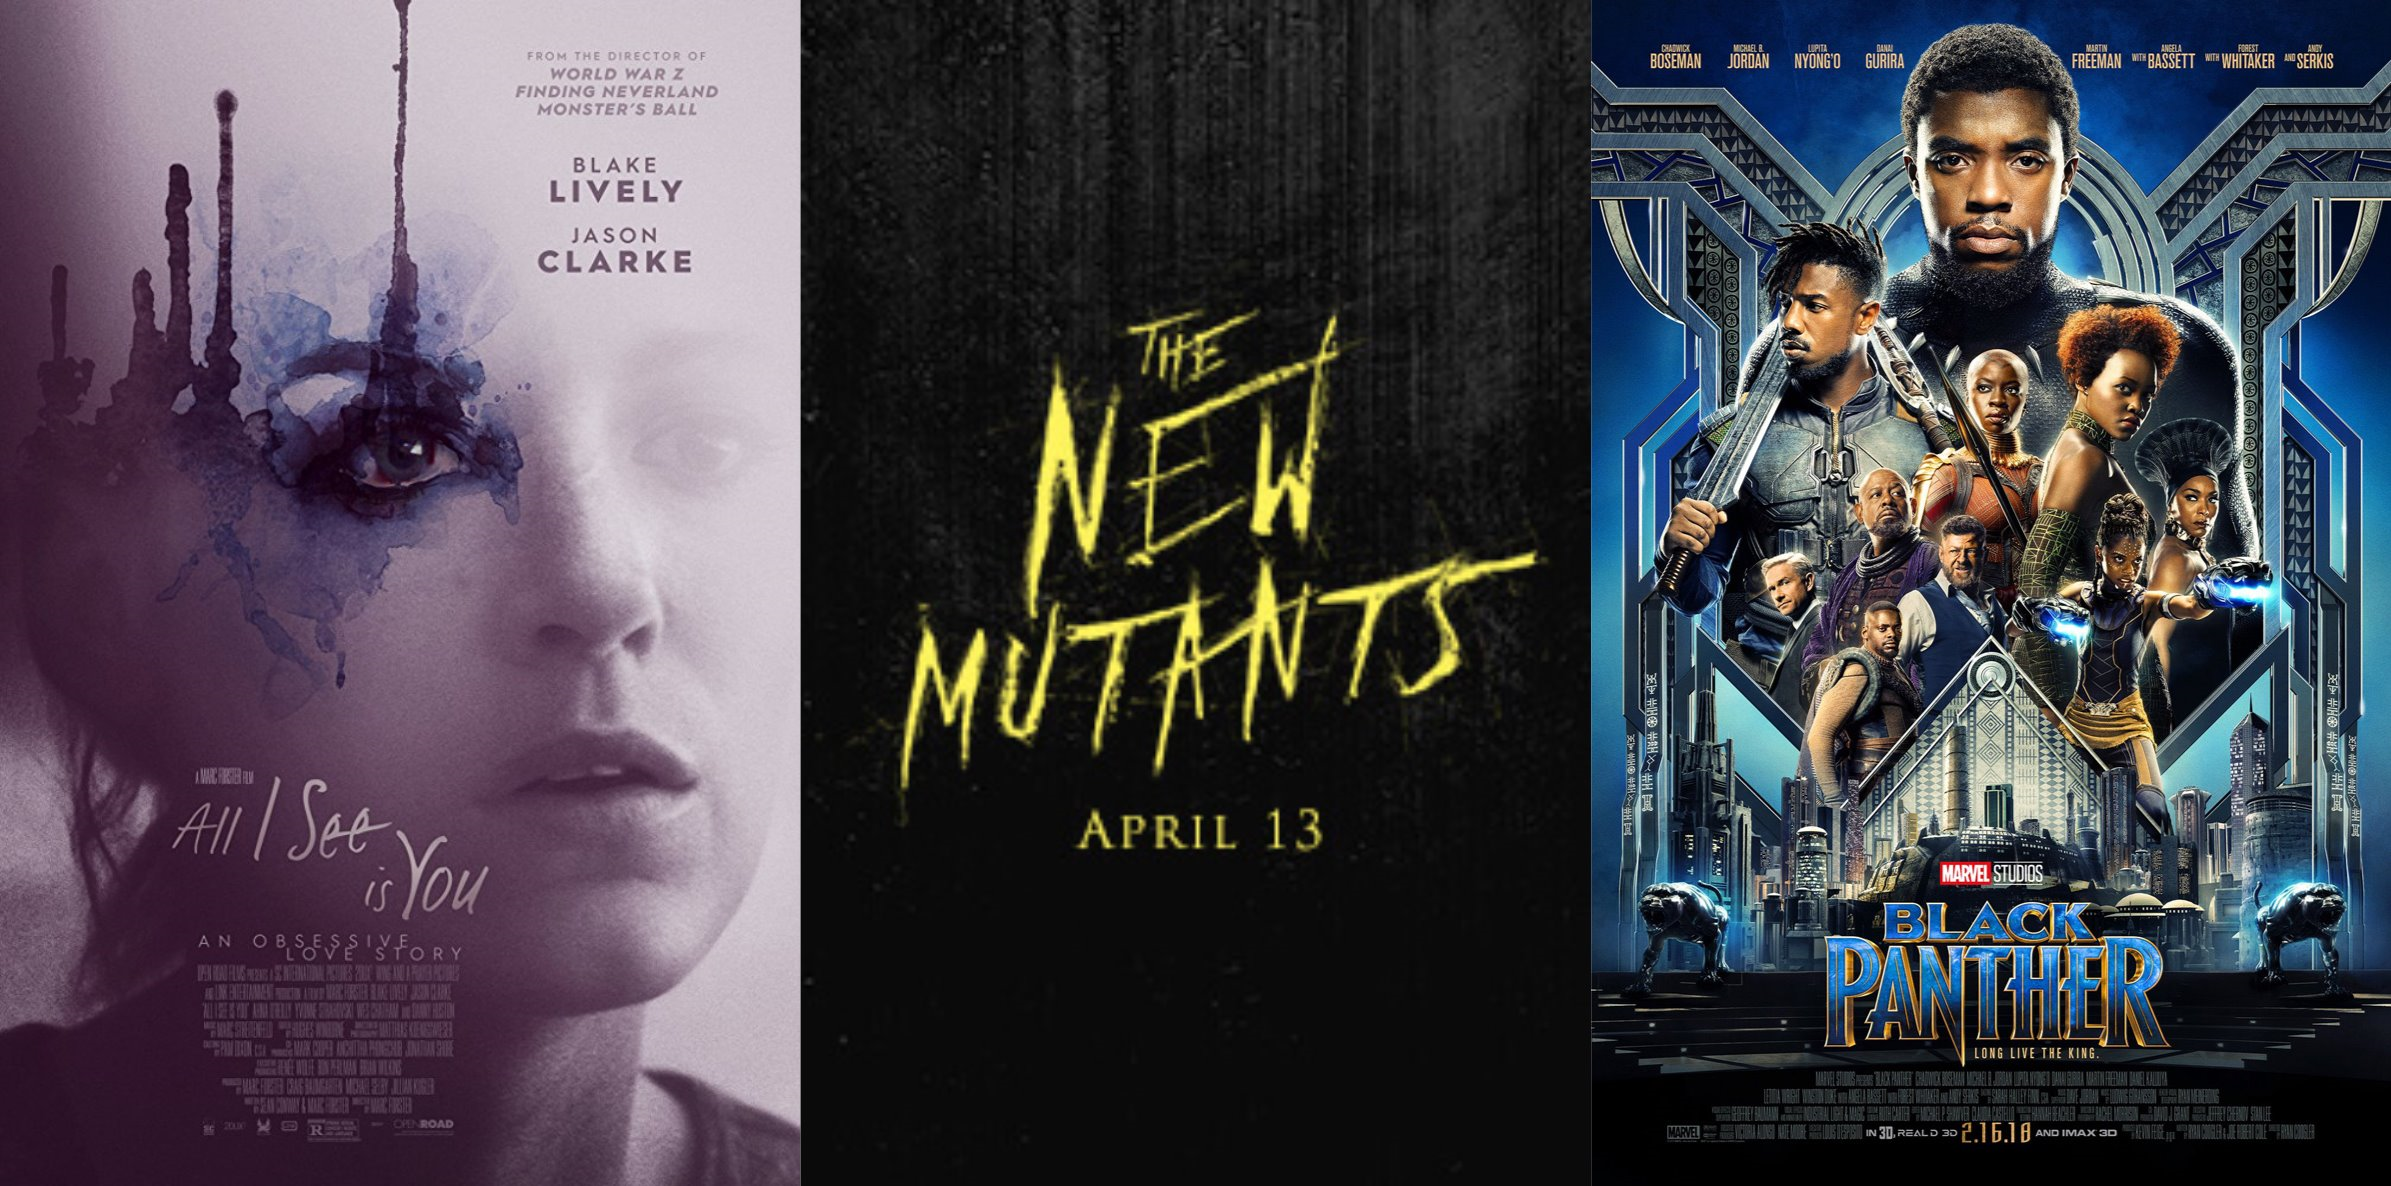 Trailer-Watchin' Wednesday - The New Mutants, All I See Is You, Black Panther